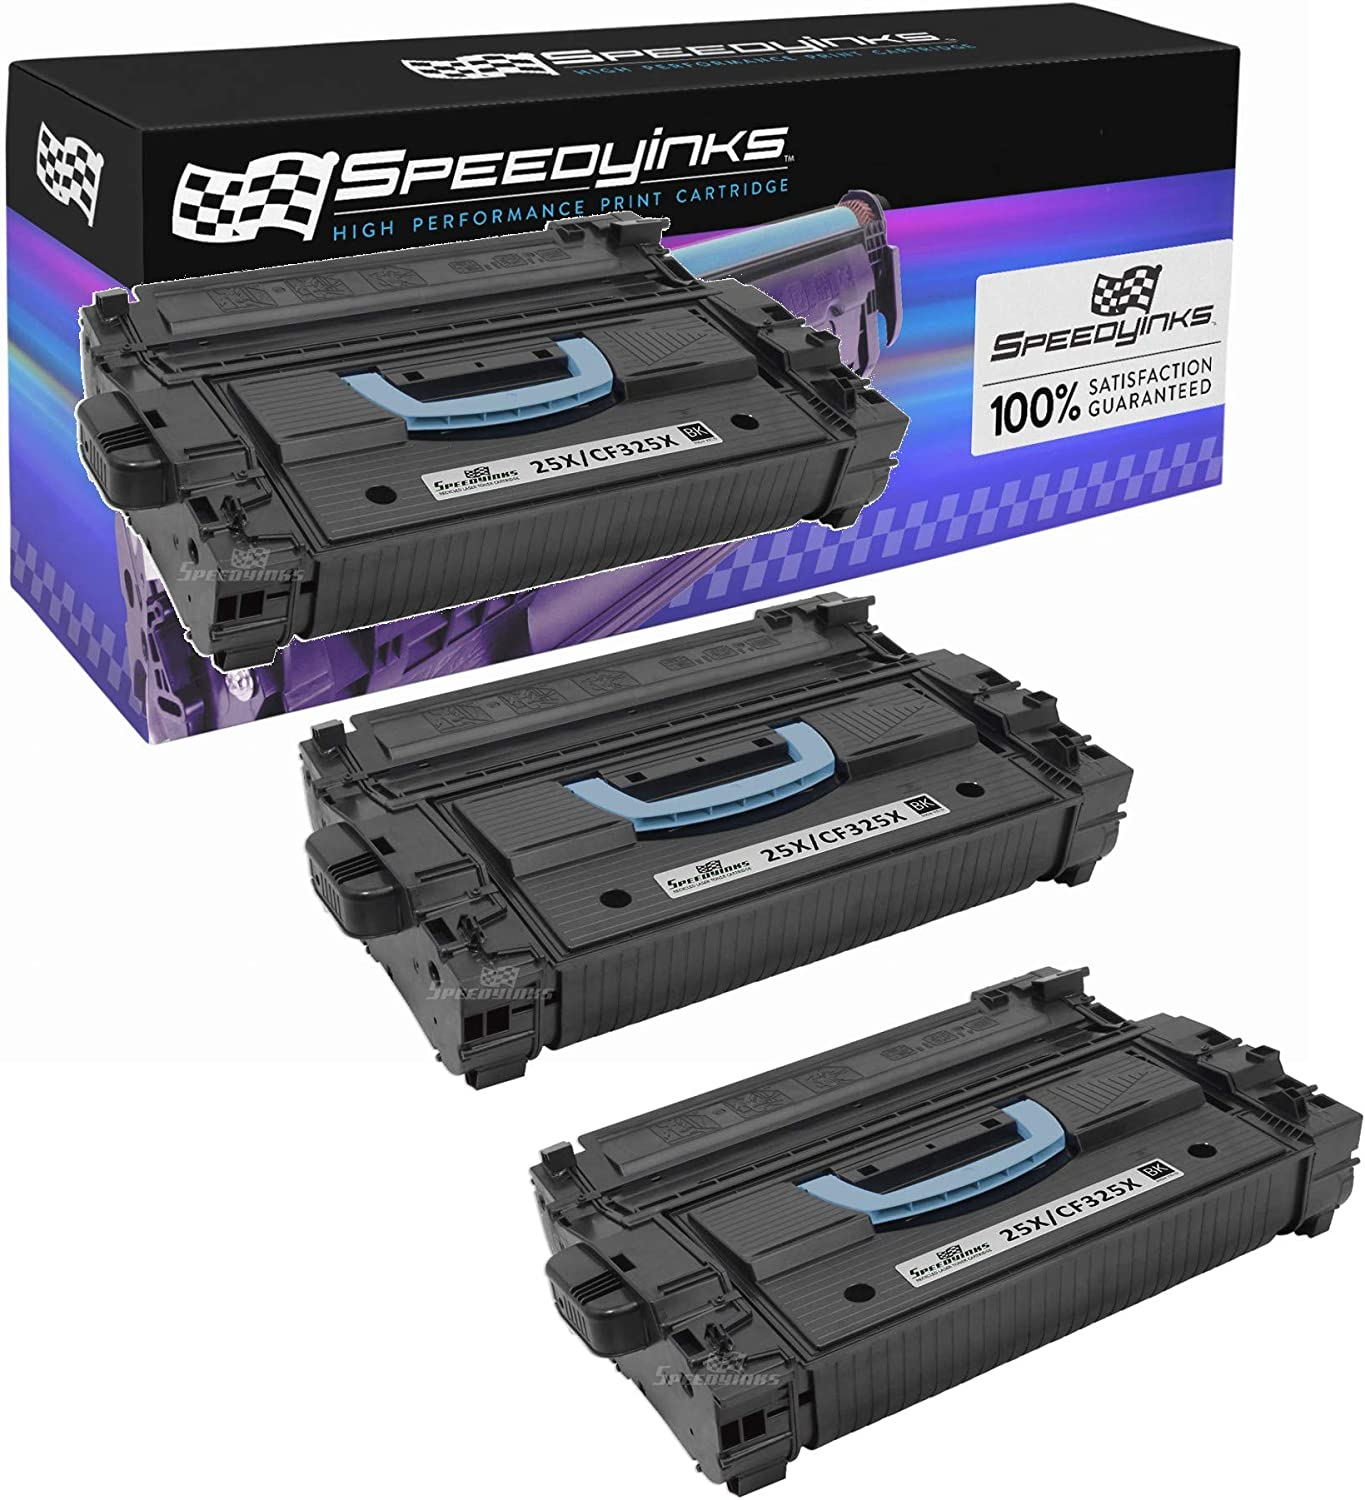 Speedy Inks Remanufactured Toner Cartridge Replacement for HP 25X / CF325X (Black, 3-Pack)